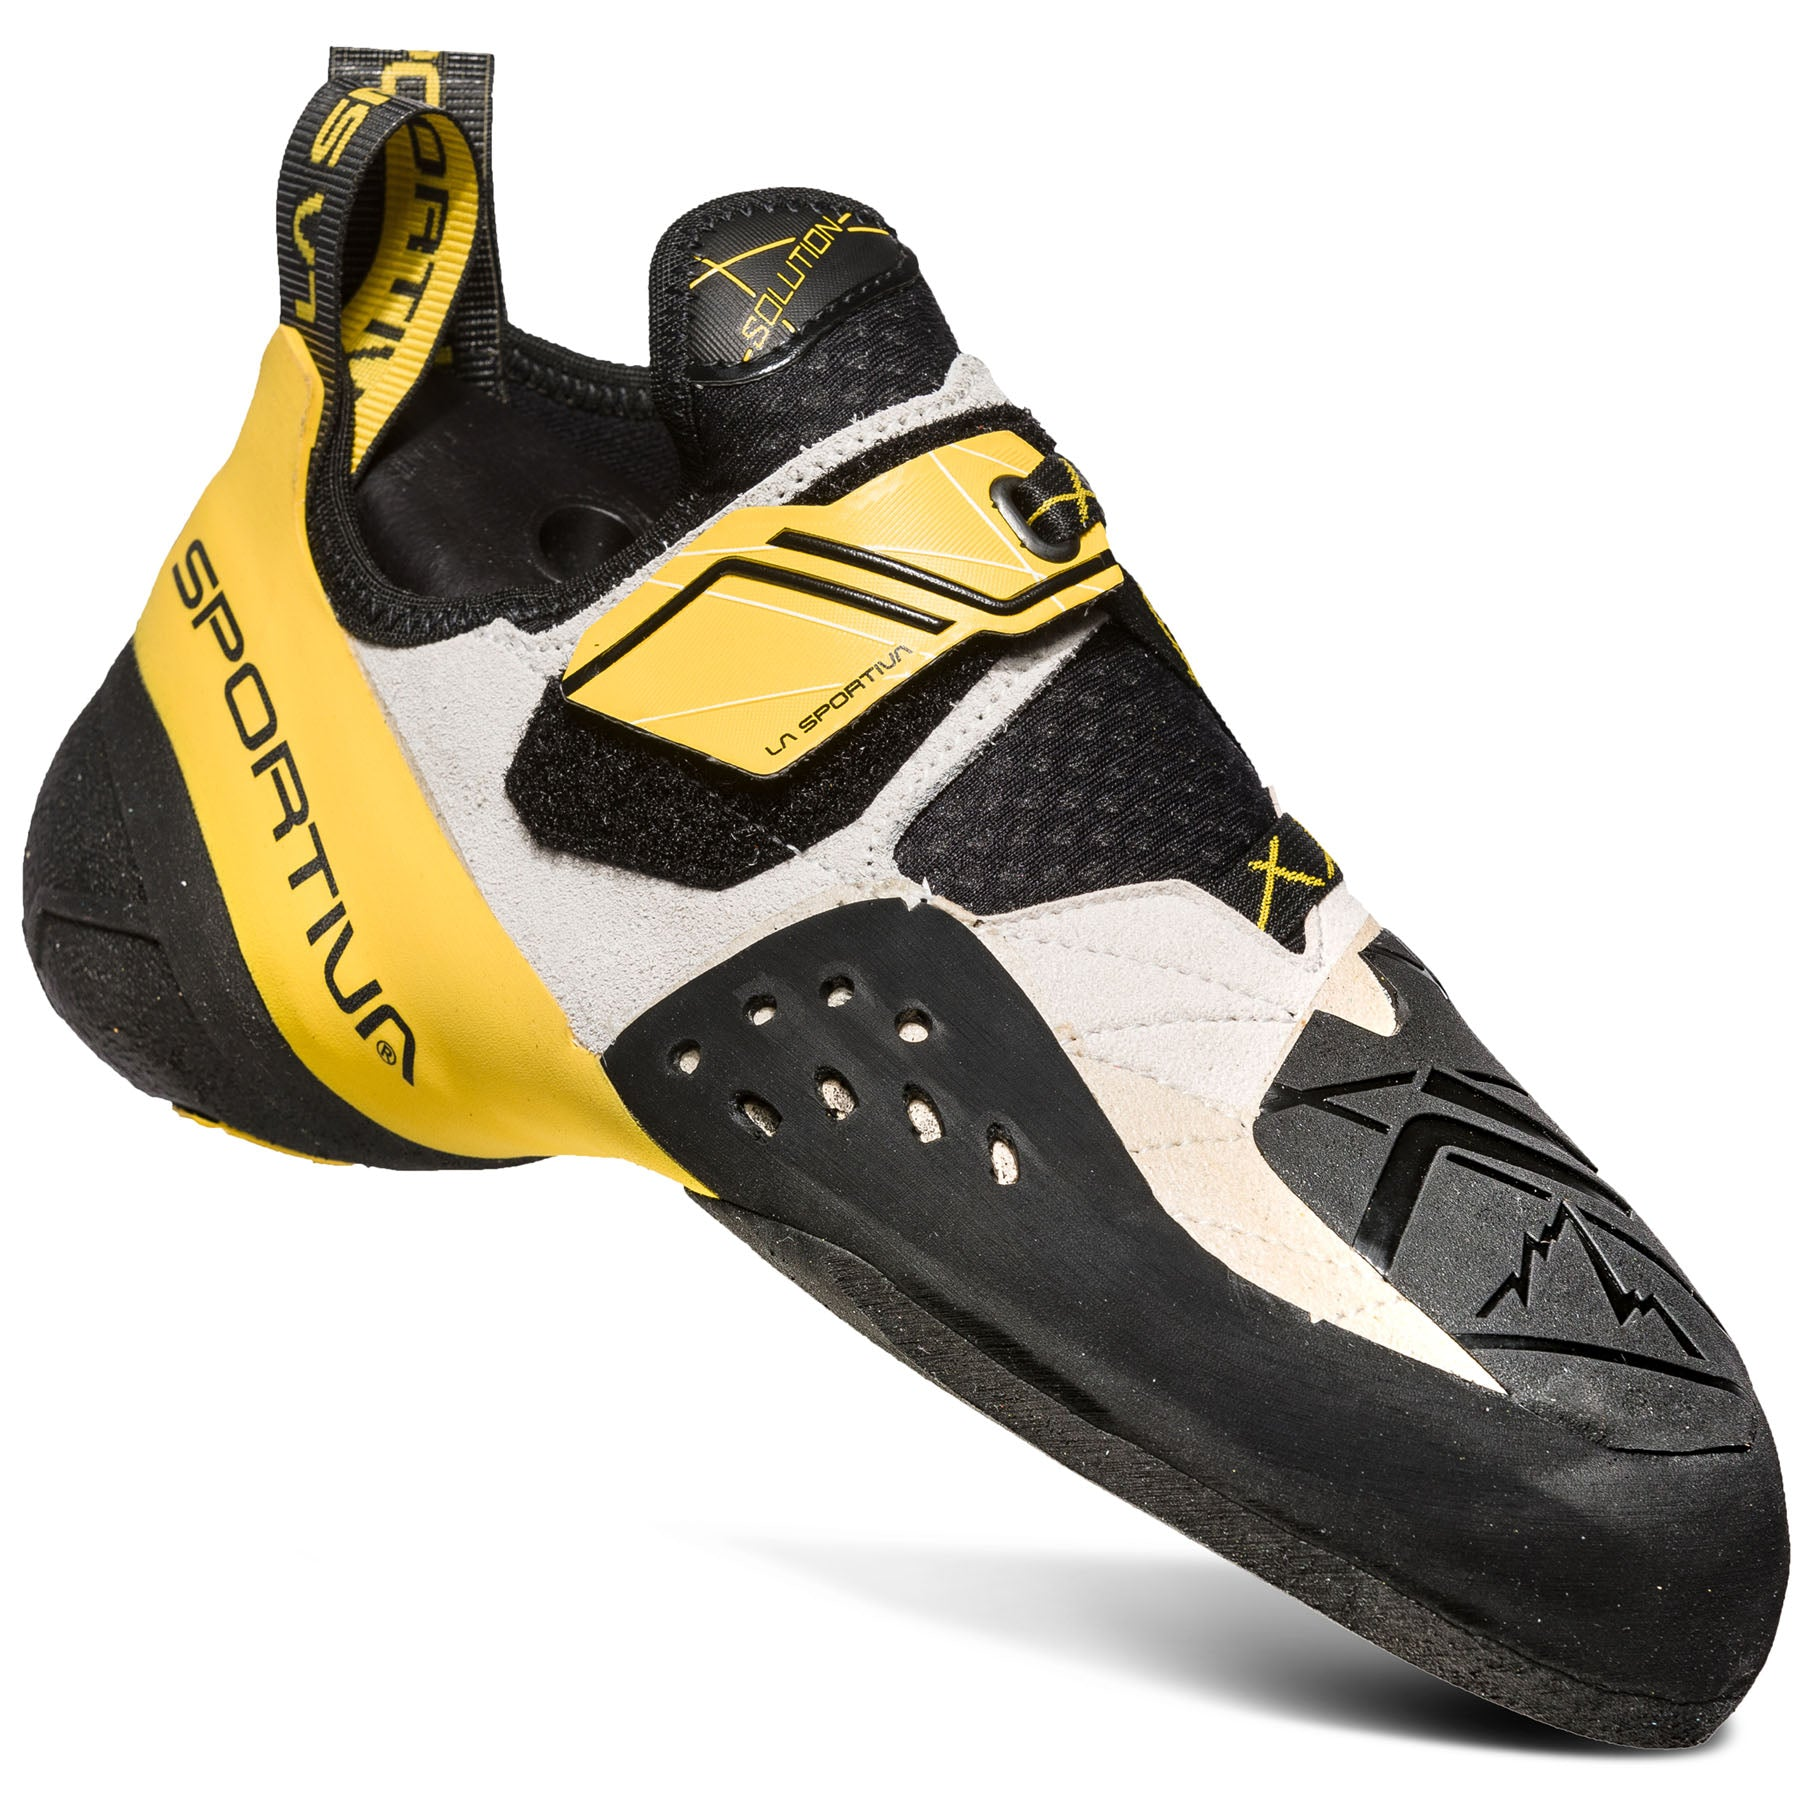 la sportiva mens solution rock shoe, side view